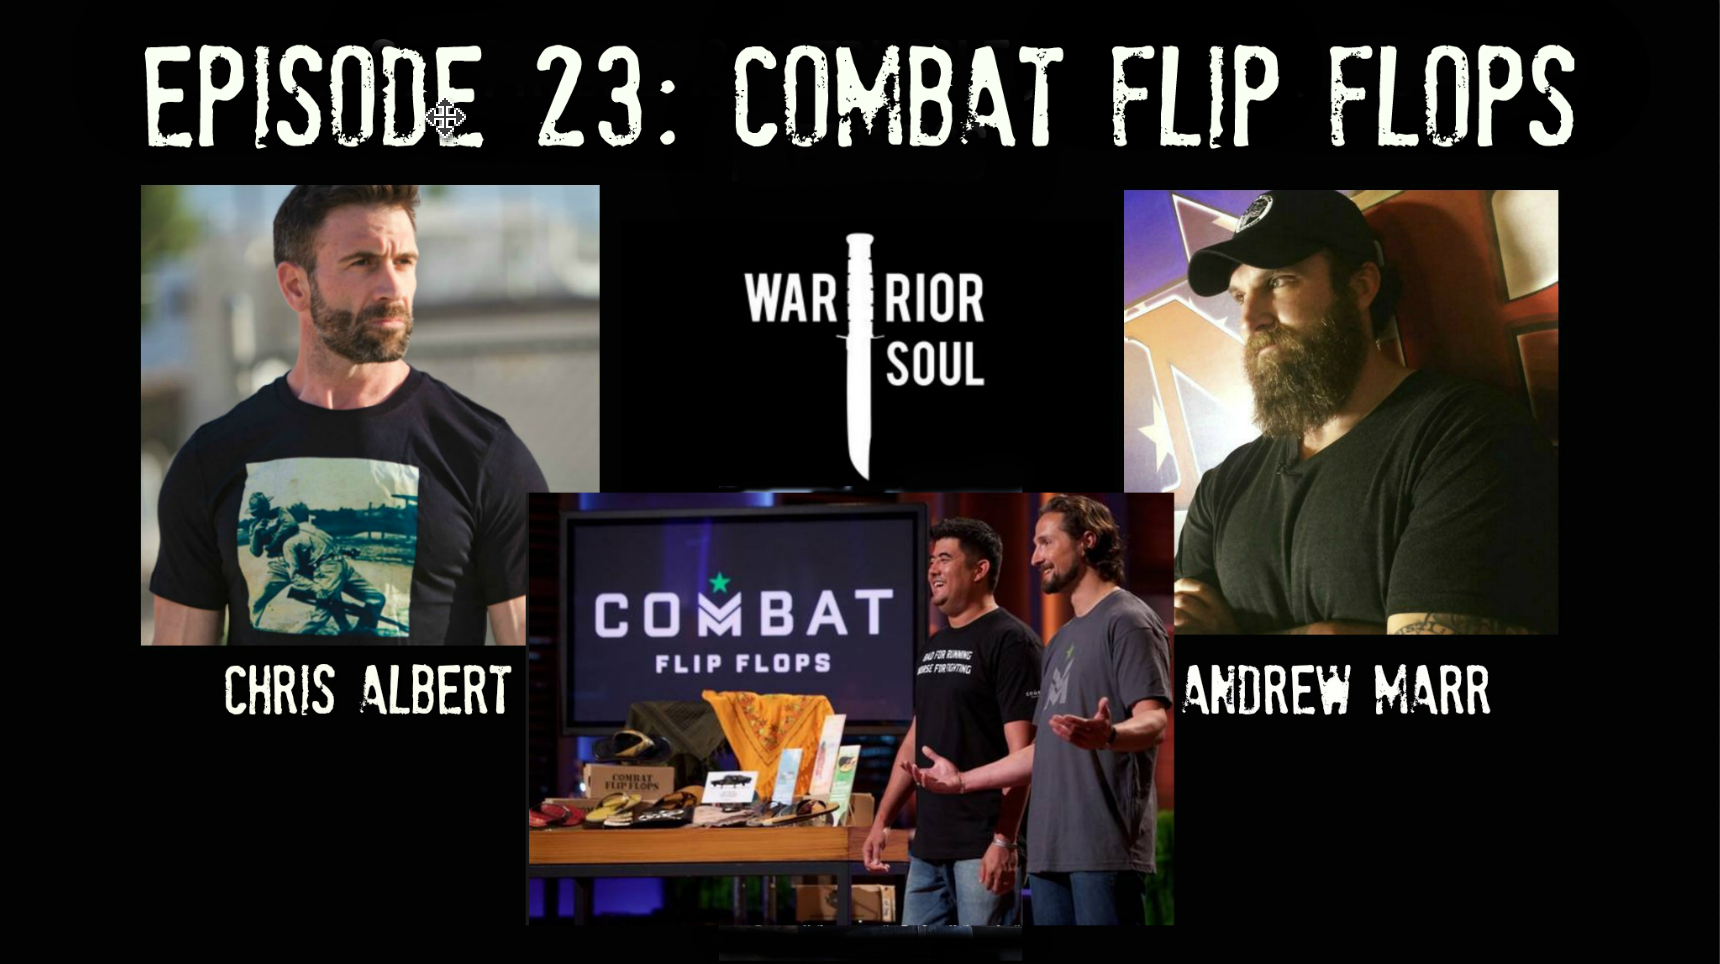 Episode 23: The Combat Flip Flops Story